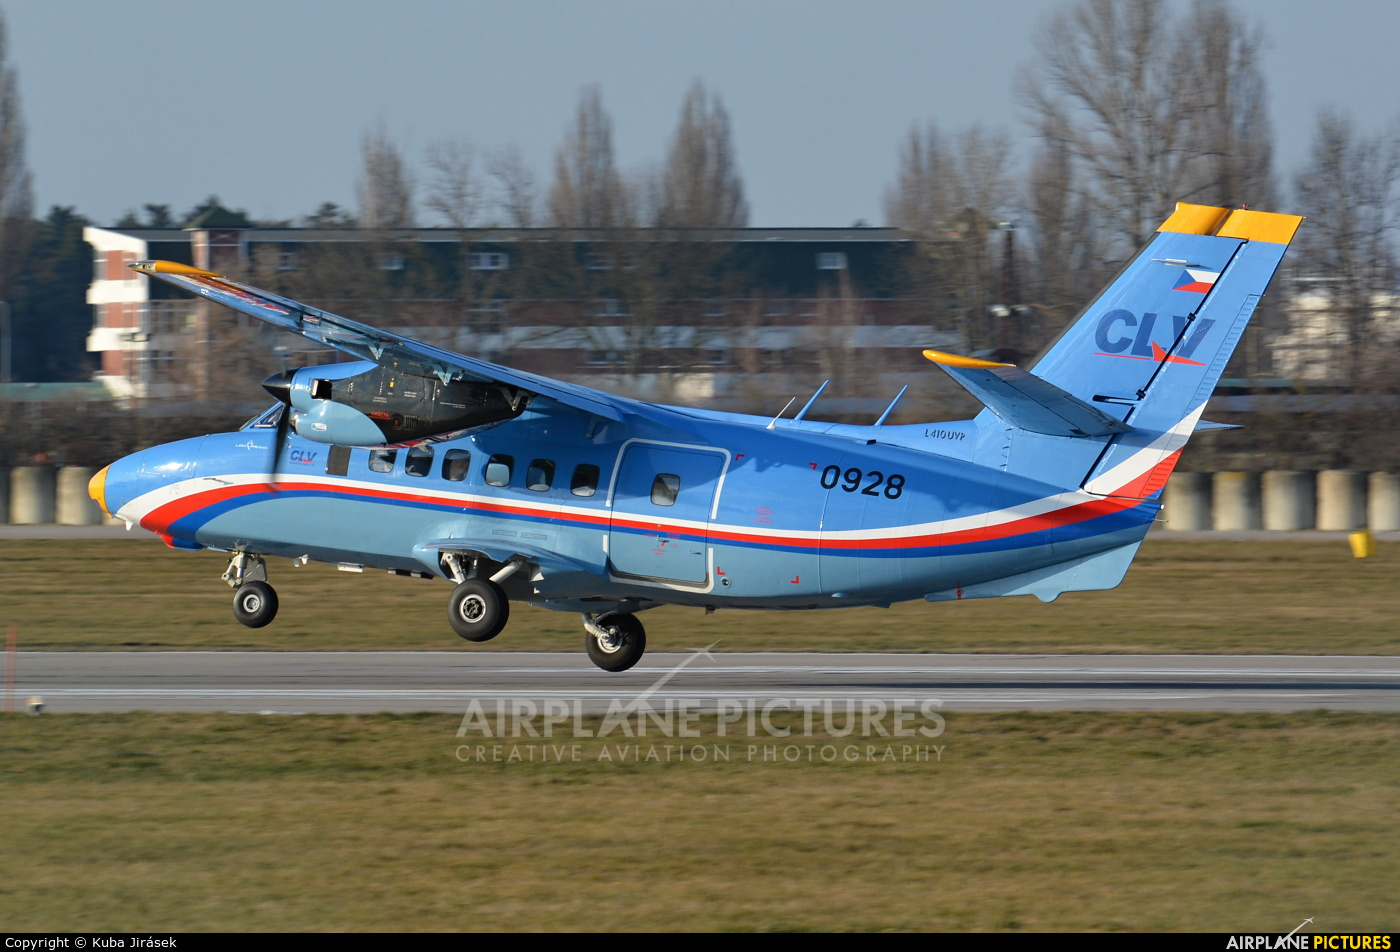 Czech - Air Force 0928 aircraft at Pardubice